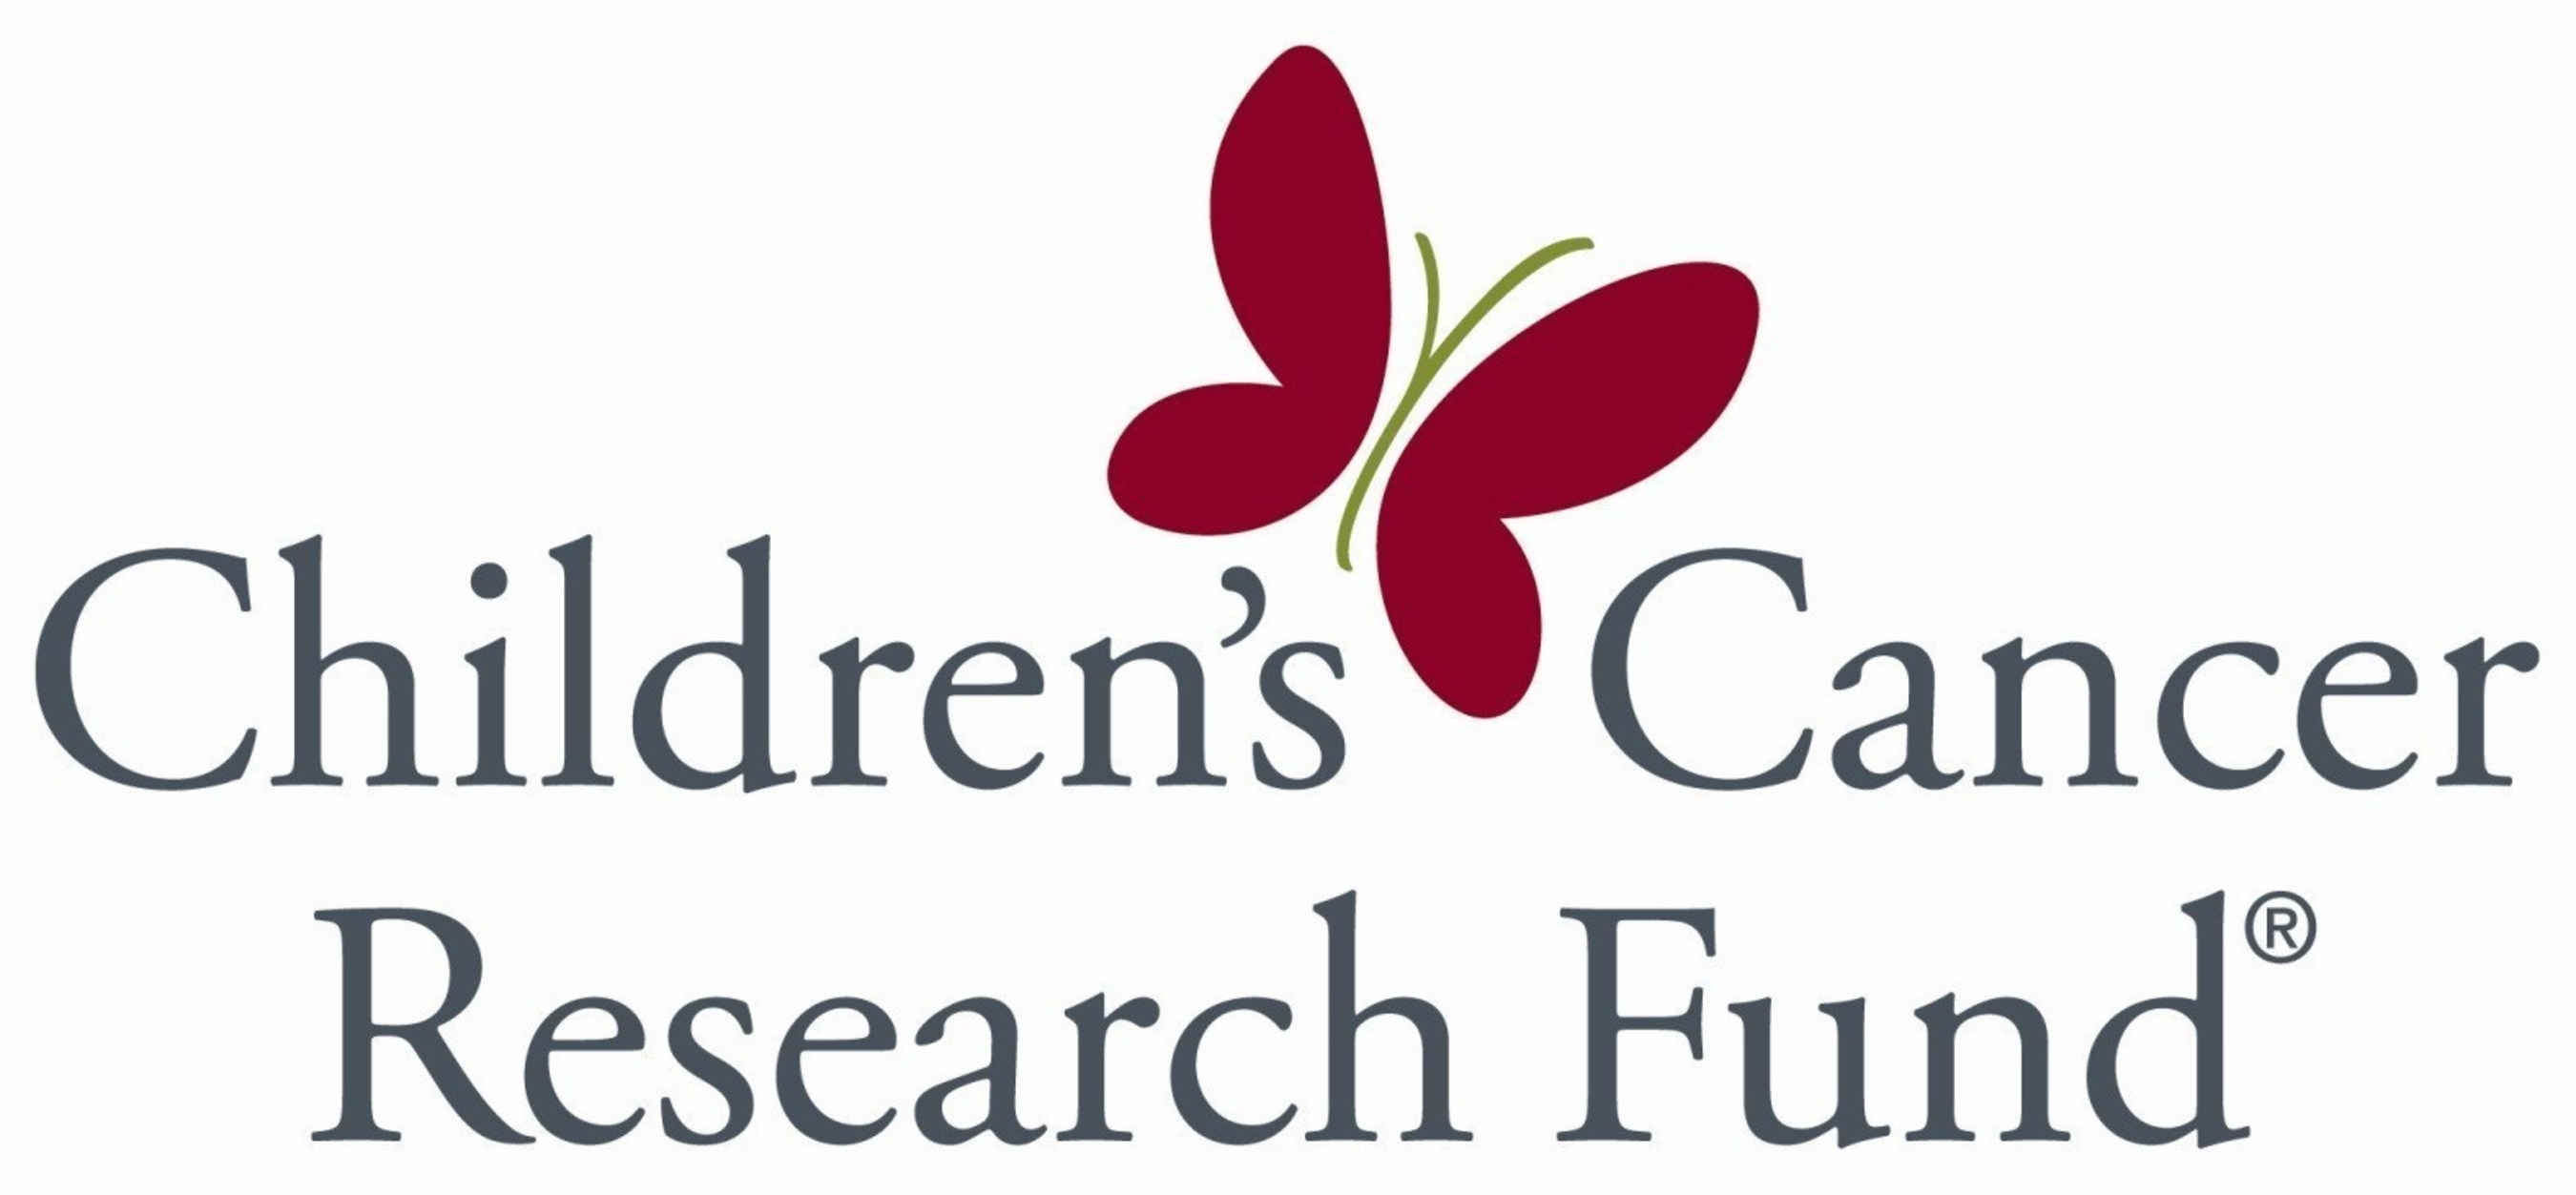 Children's Cancer Research Fund Uses JCA's Predictive Analytics to Improve Fundraising ROI